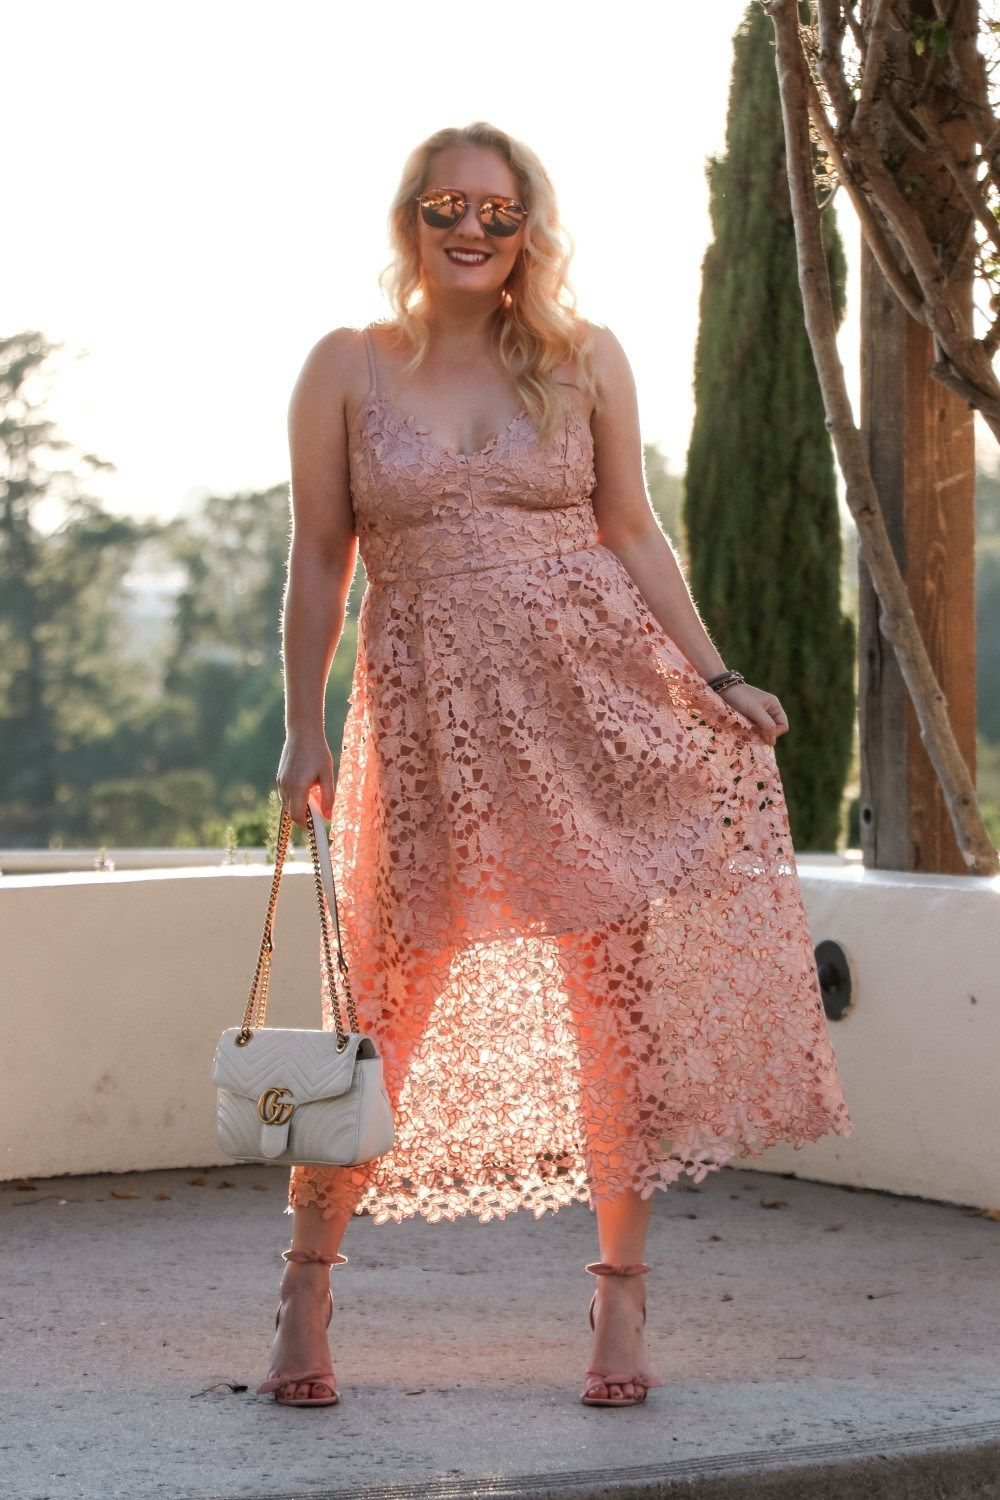 c06f3cf5b4 ASTR the Label Lace Midi Rose Gold Lace Dress for New Years Eve | Have Need  Want Click to read the post + get outfit details!